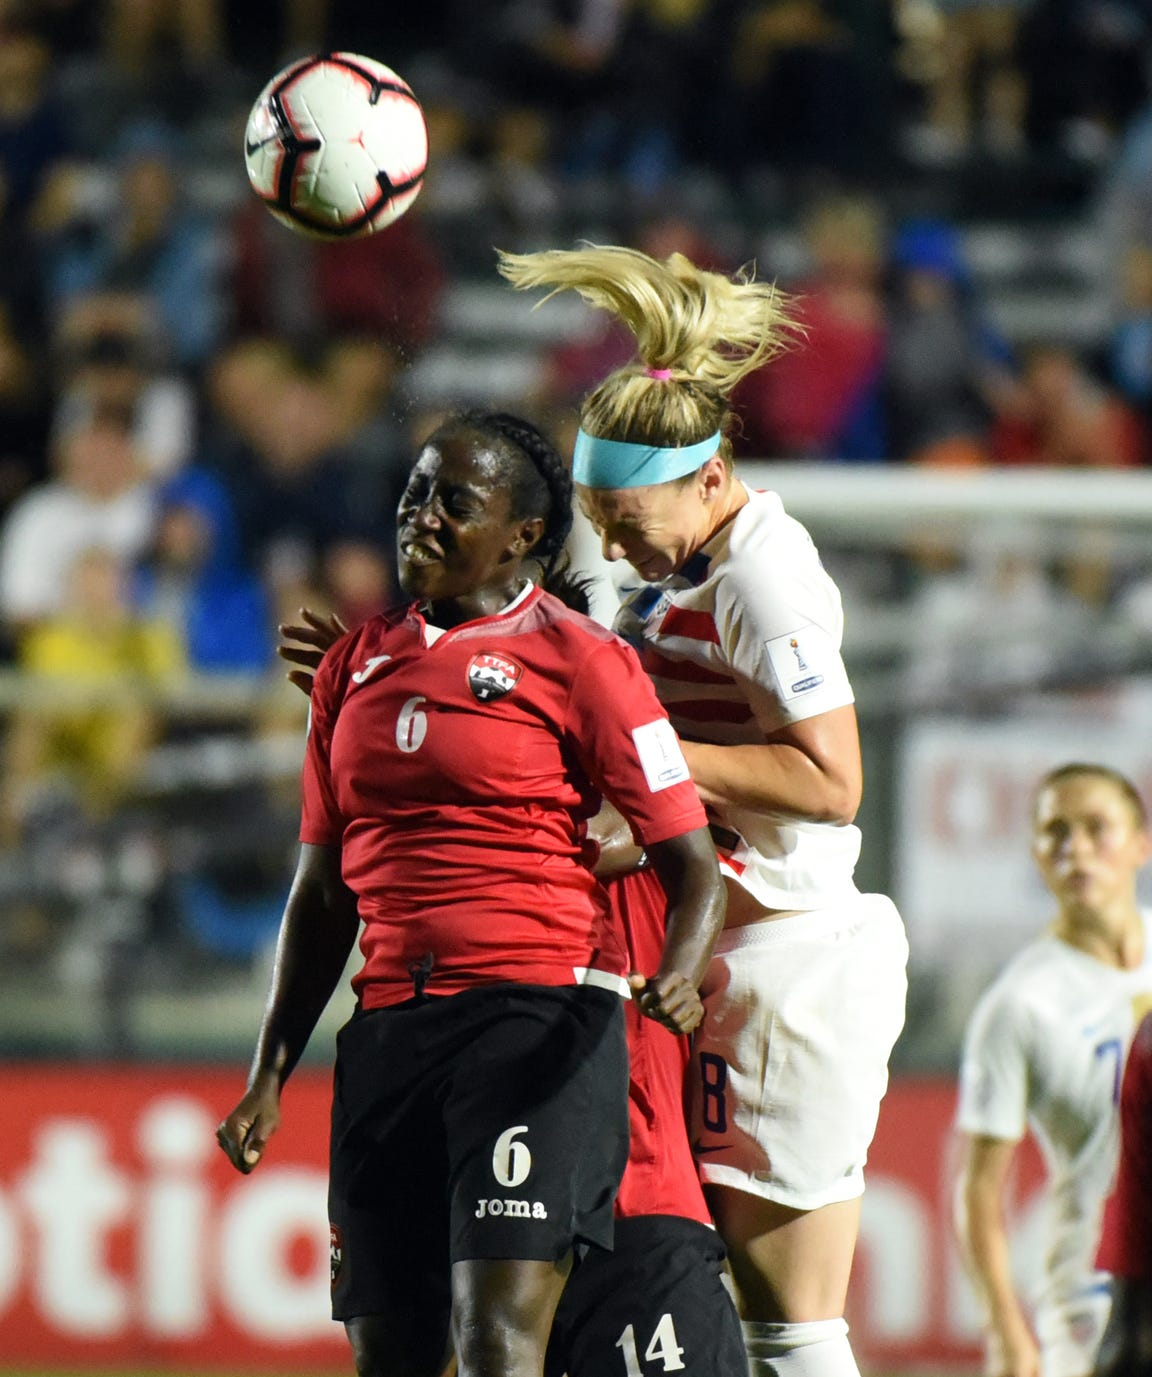 """""""If she's playing in the World Cup final, or our random Wednesday night game in Chicago in the league, she's going to bring the same energy, the same mentality that she wants to be the best version of herself every single game."""""""